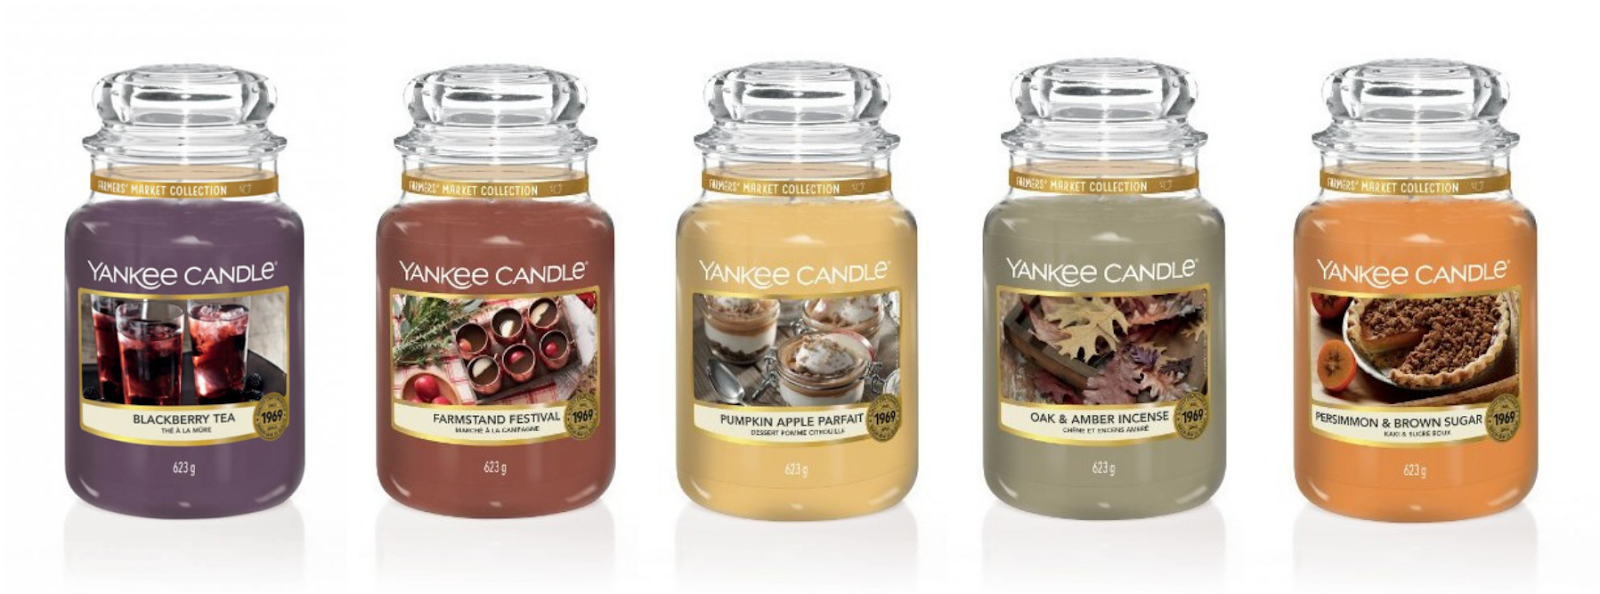 Farmer's-Market-Yankee-Candle-limited-edition